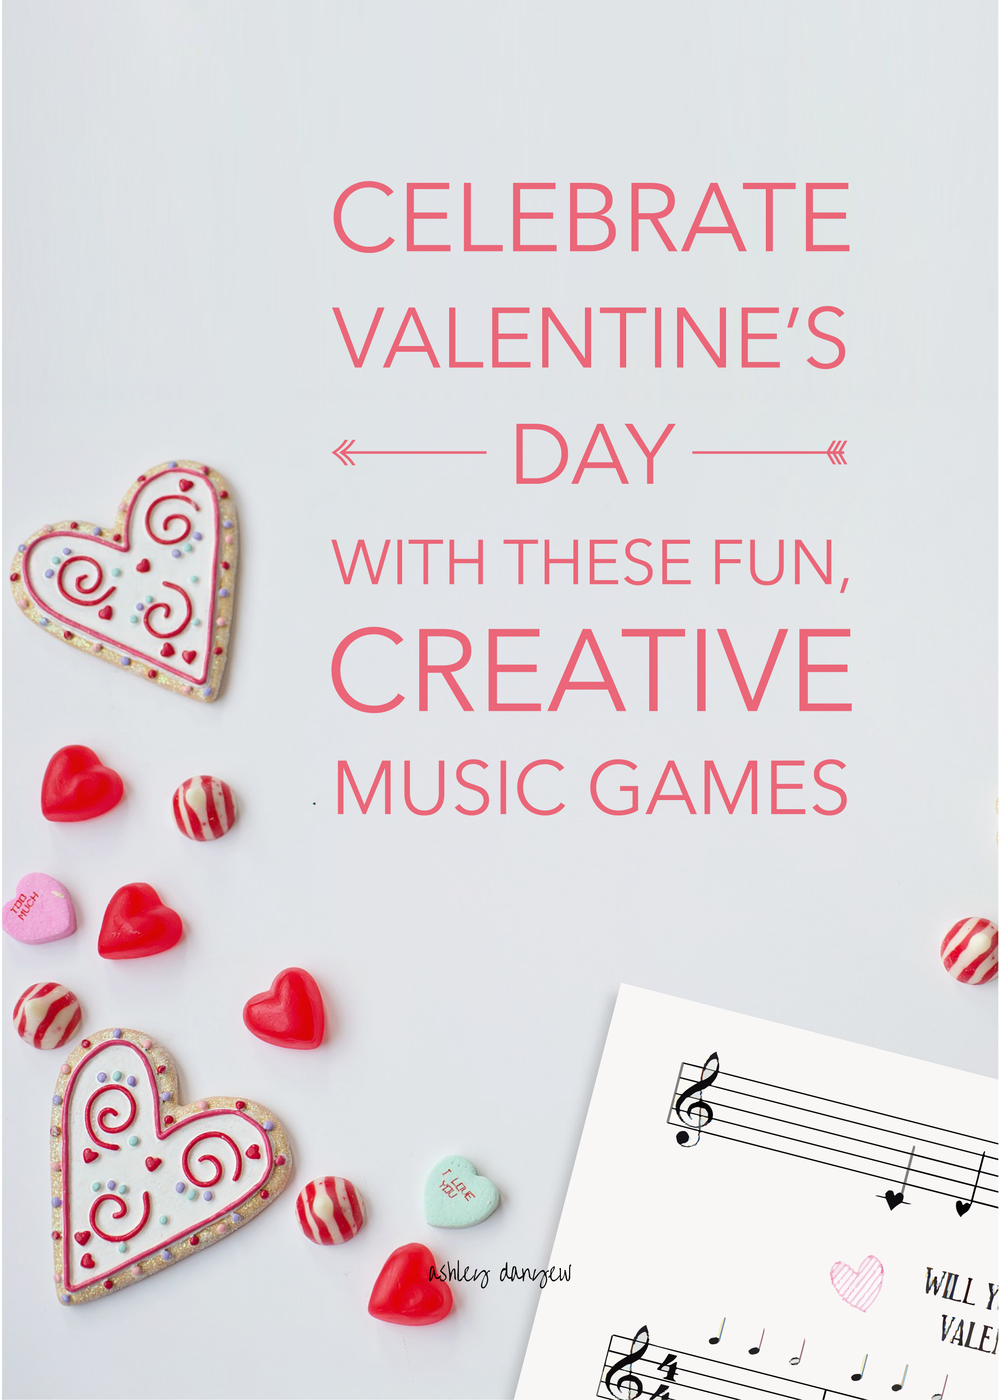 Celebrate Valentine's Day with These Fun, Creative Music Games-07.png